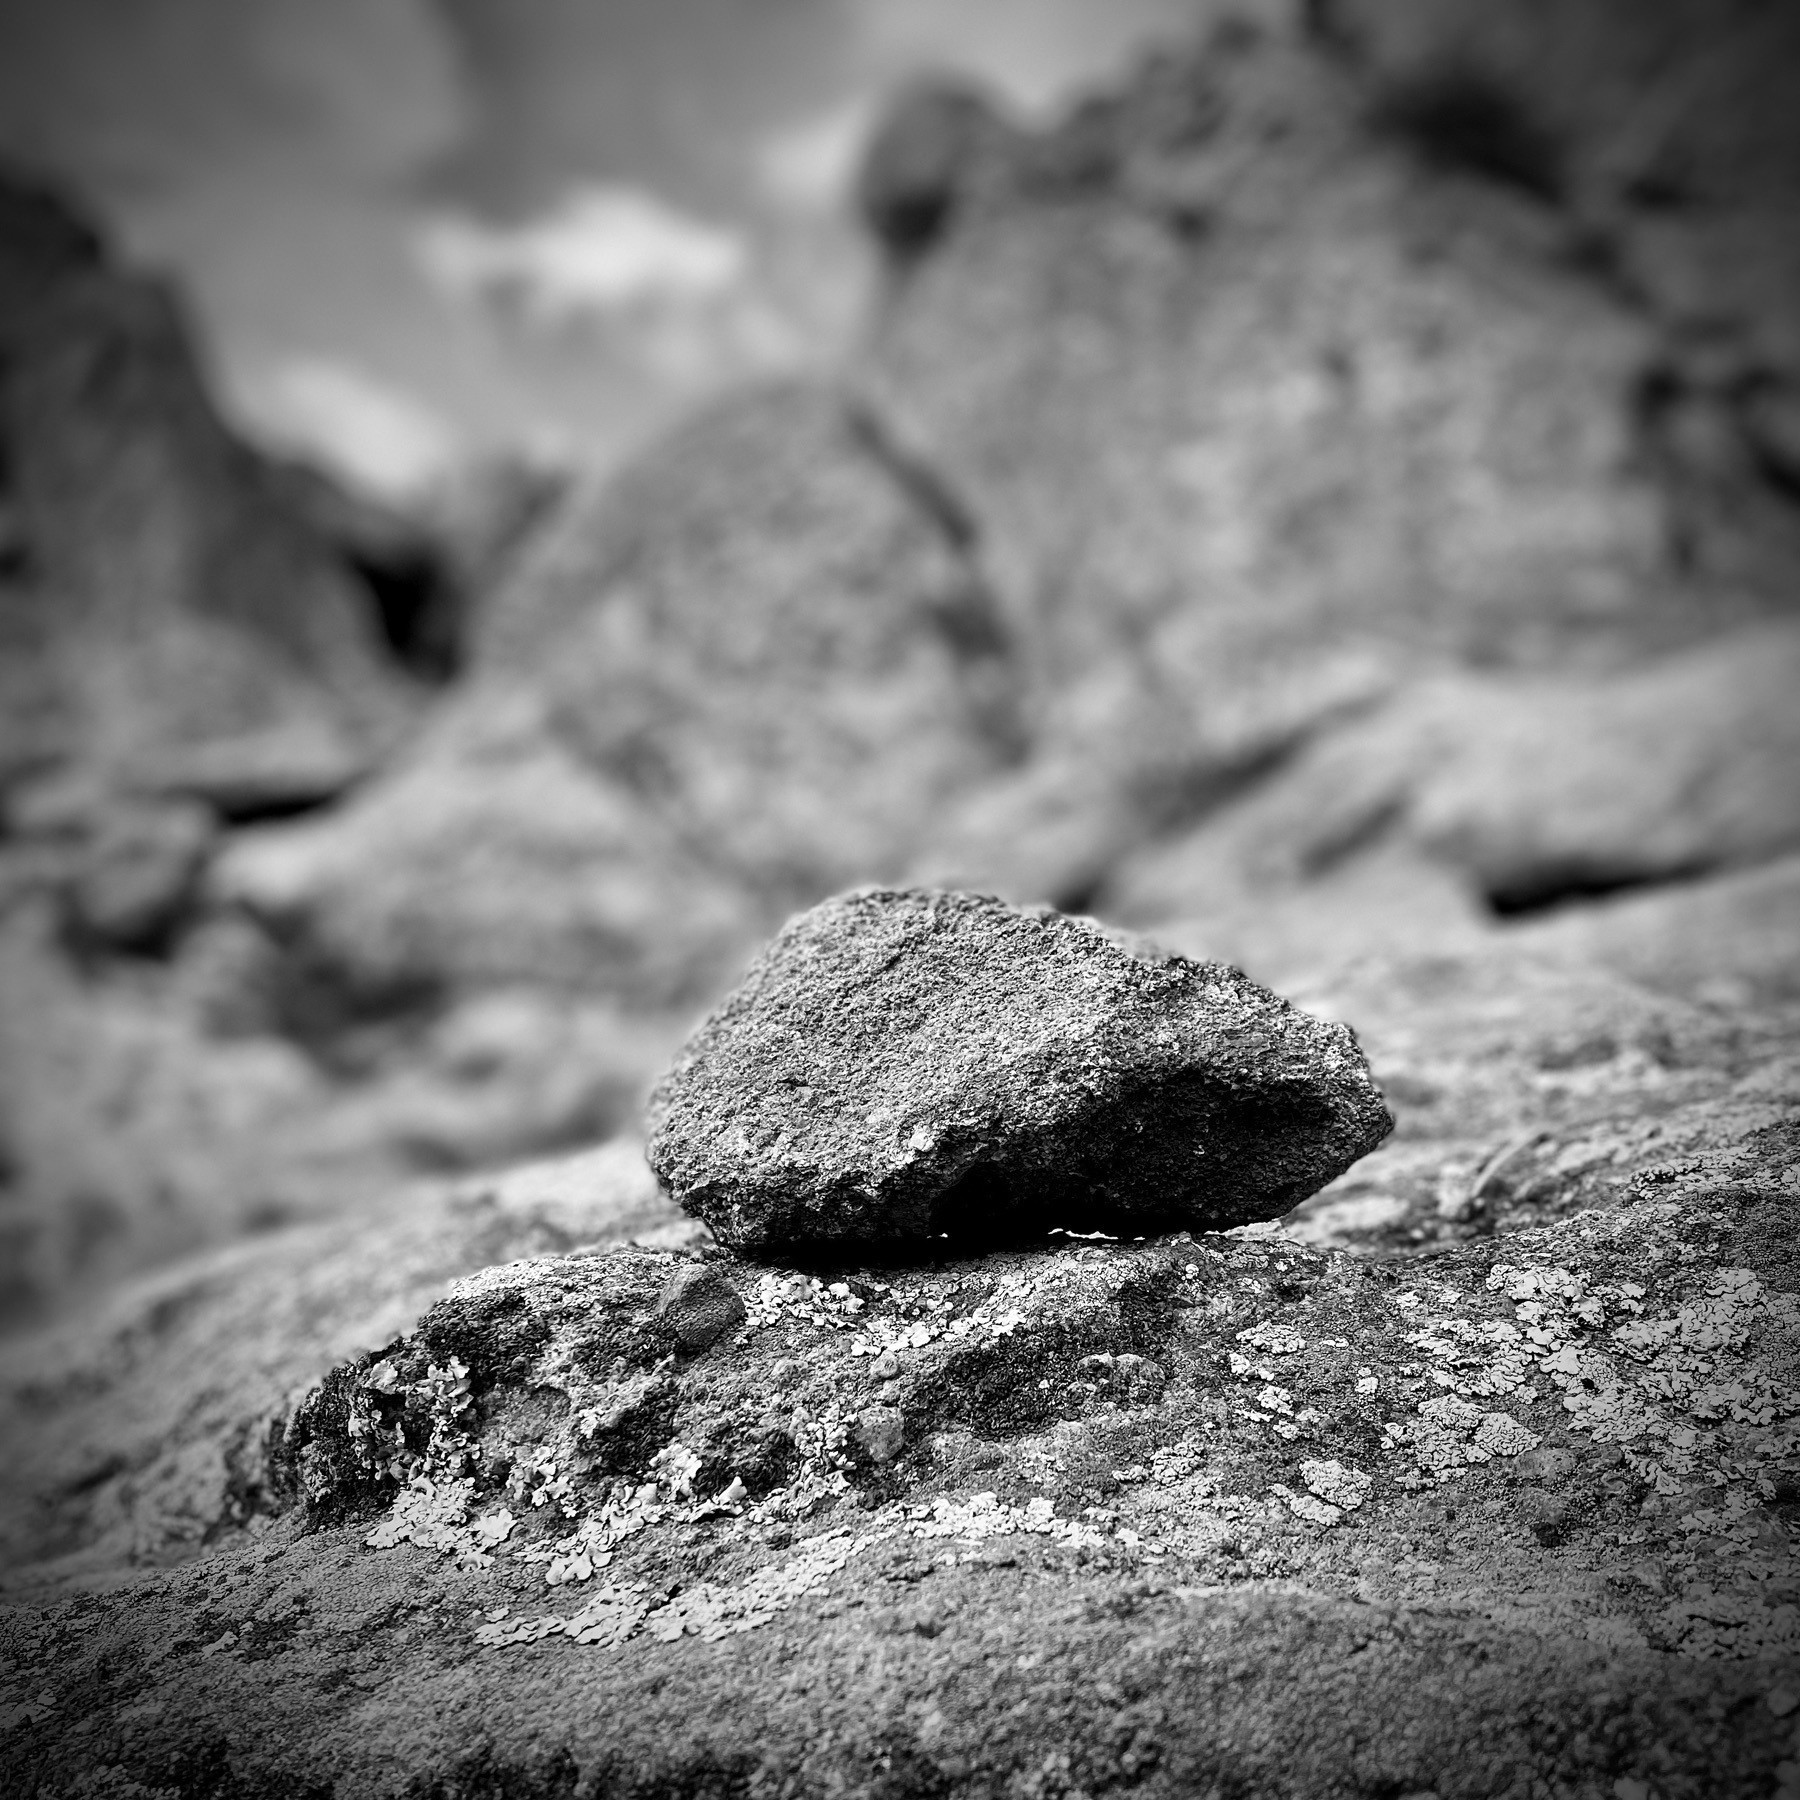 Stone atop boulders, black and white.